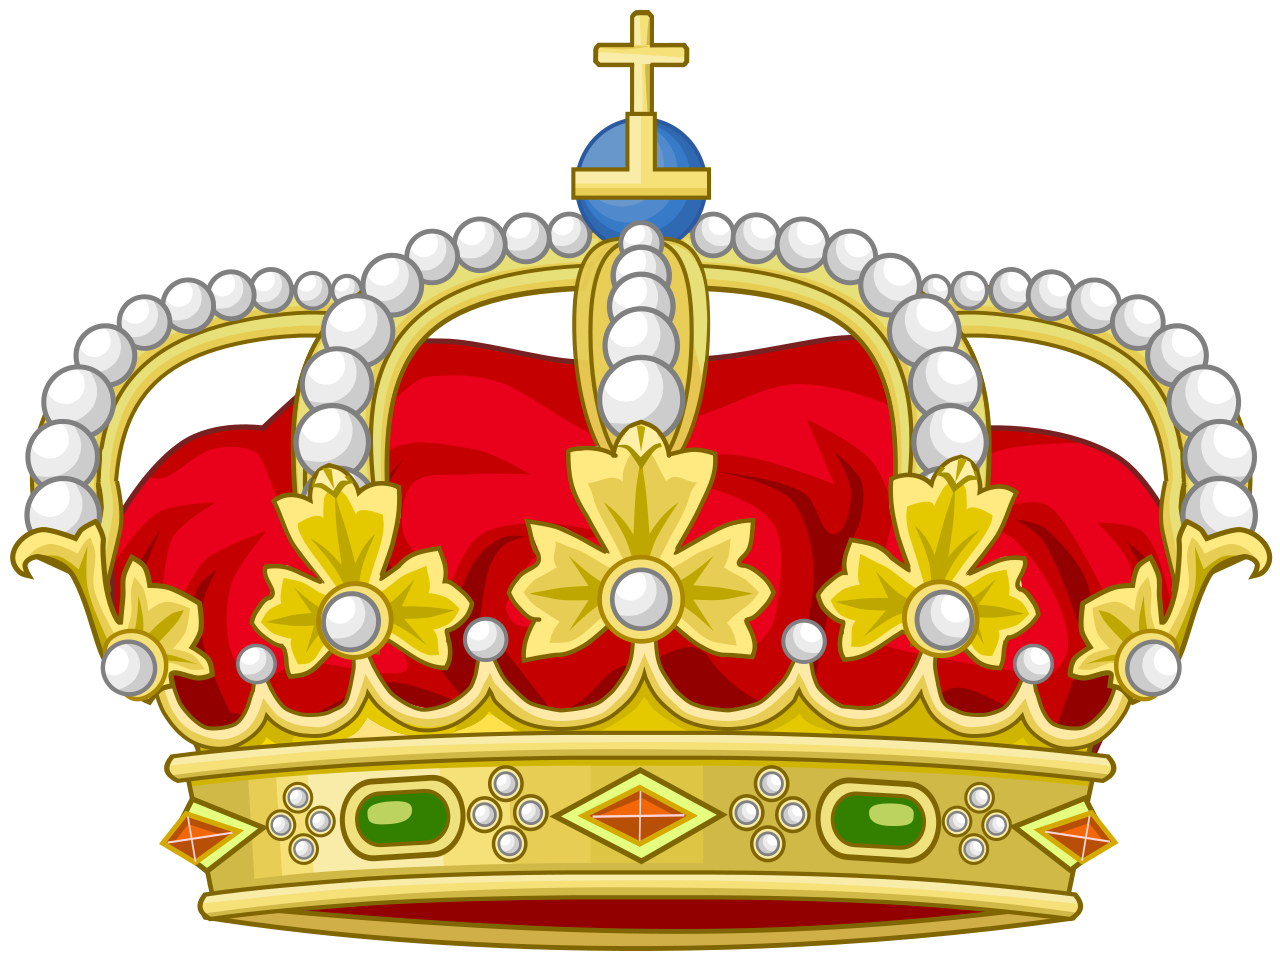 Red kings crown basketball clipart png freeuse download File:Heraldic Royal Crown of Spain.svg - Wikipedia png freeuse download